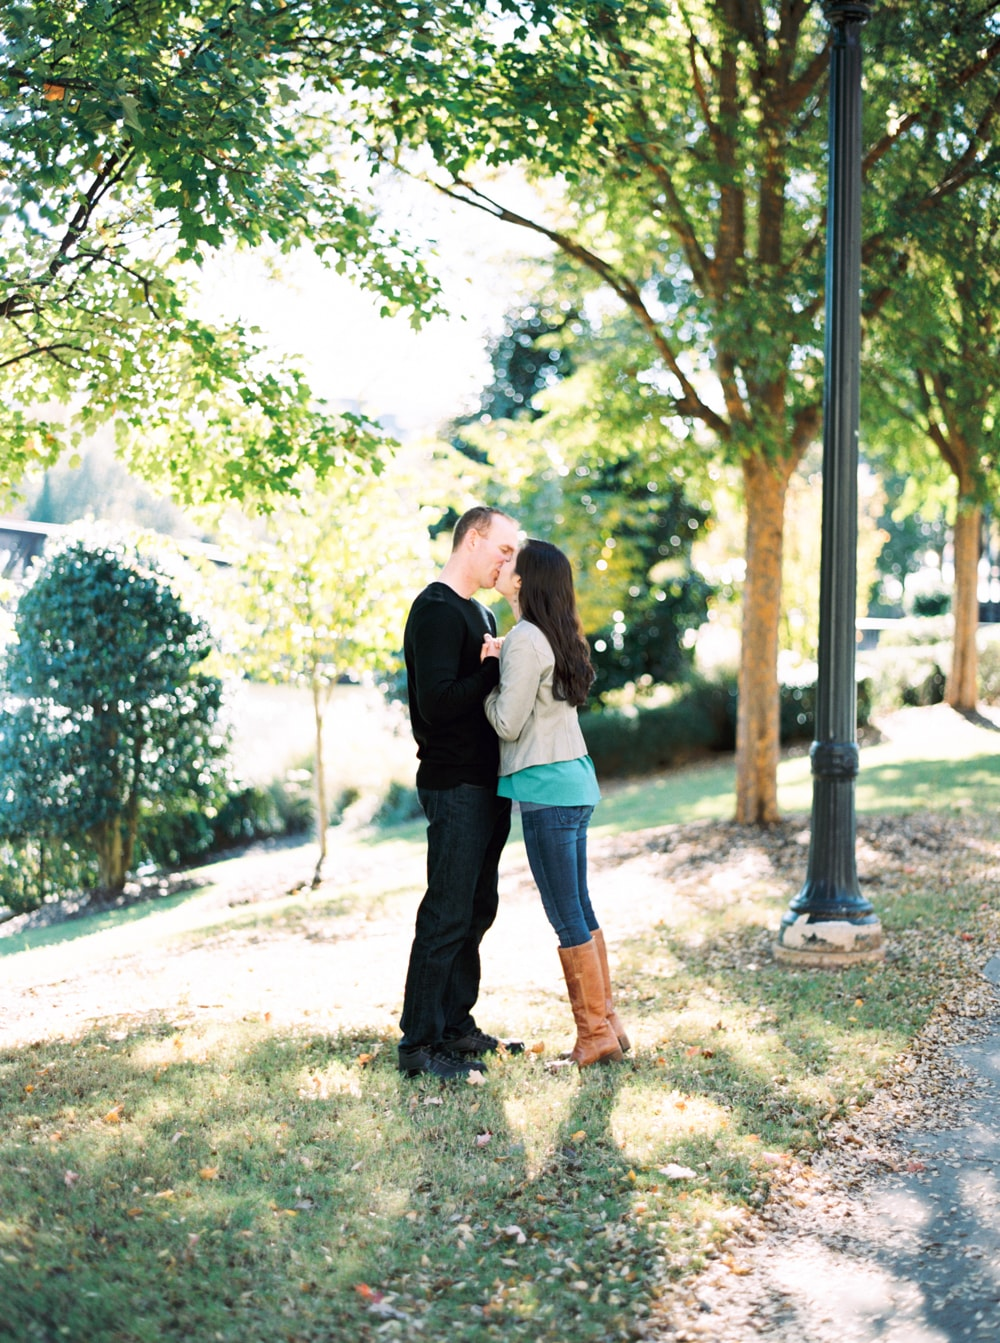 north-carolina-engagement-photography-57-min.jpg